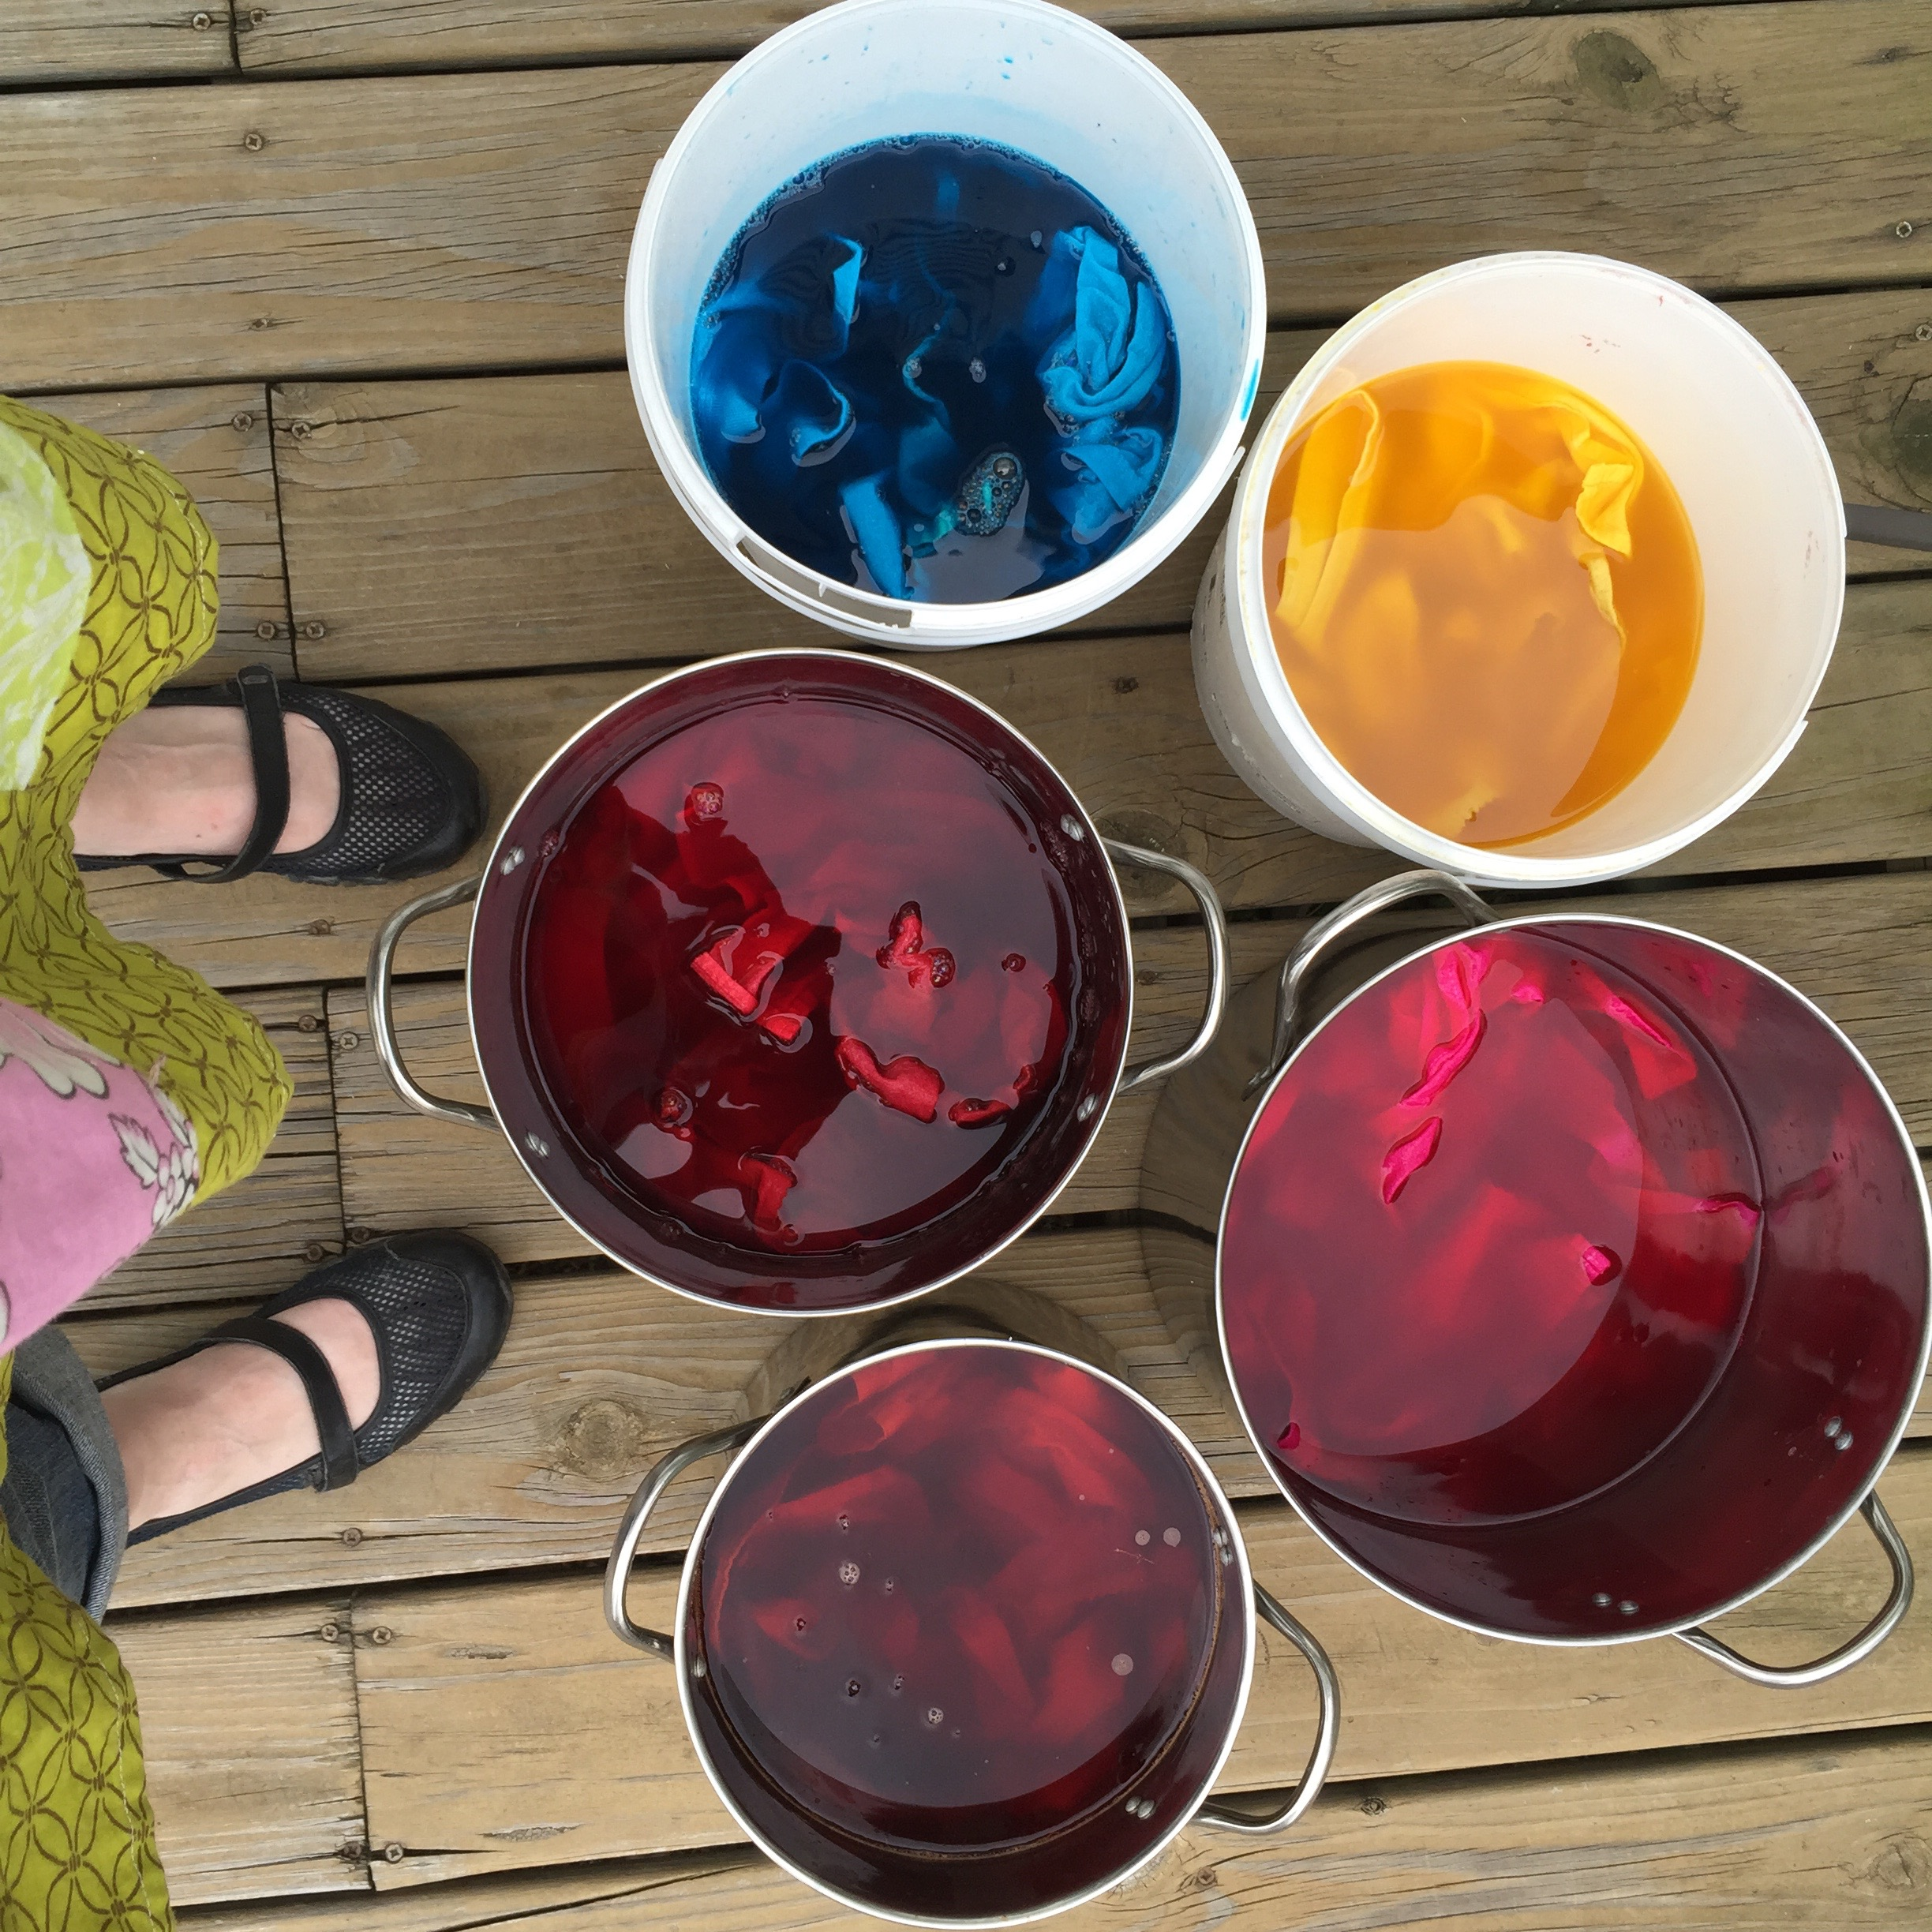 Use these dyes for dyeing cellulose (of plant origin) fibers like cotton, rayon, hemp, linen, Tencel, bamboo, reed etc. The Dharma Fiber Reactive Dyes give bright jewel toned colors that don't fade, even after repeated washings! No simmering or hot water necessary for that one. It .